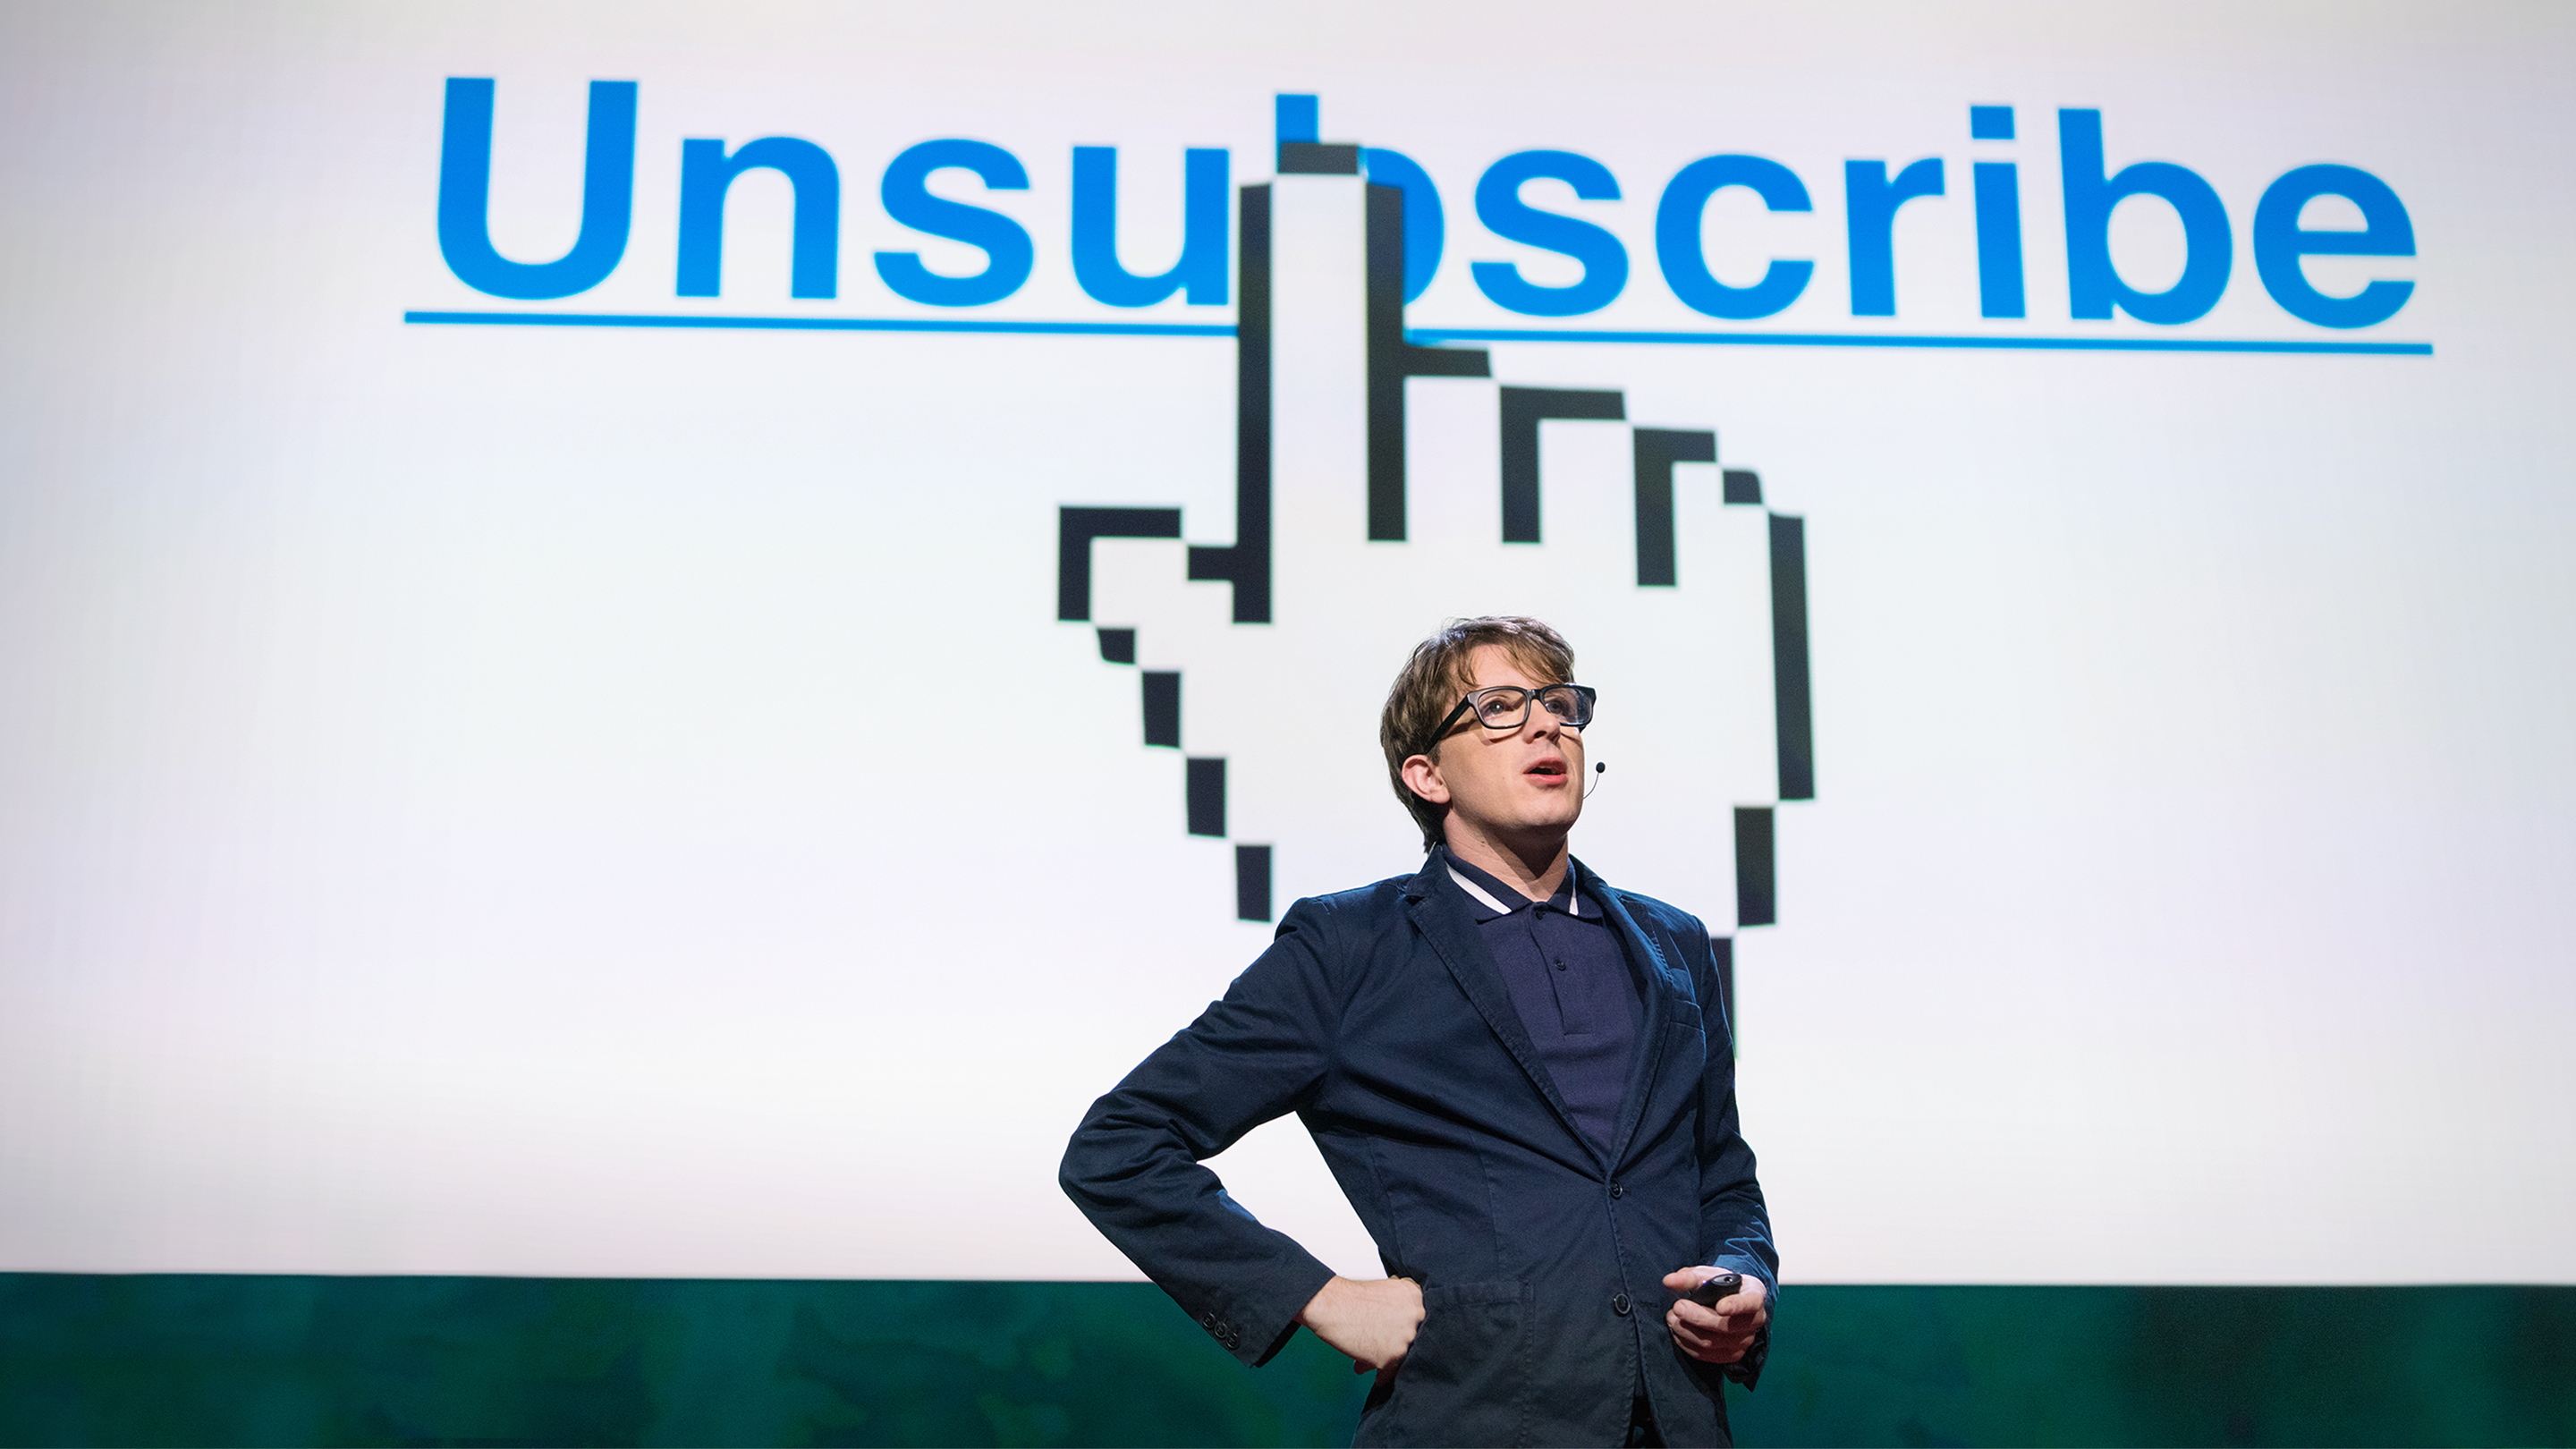 James Veitch: The agony of trying to unsubscribe thumbnail